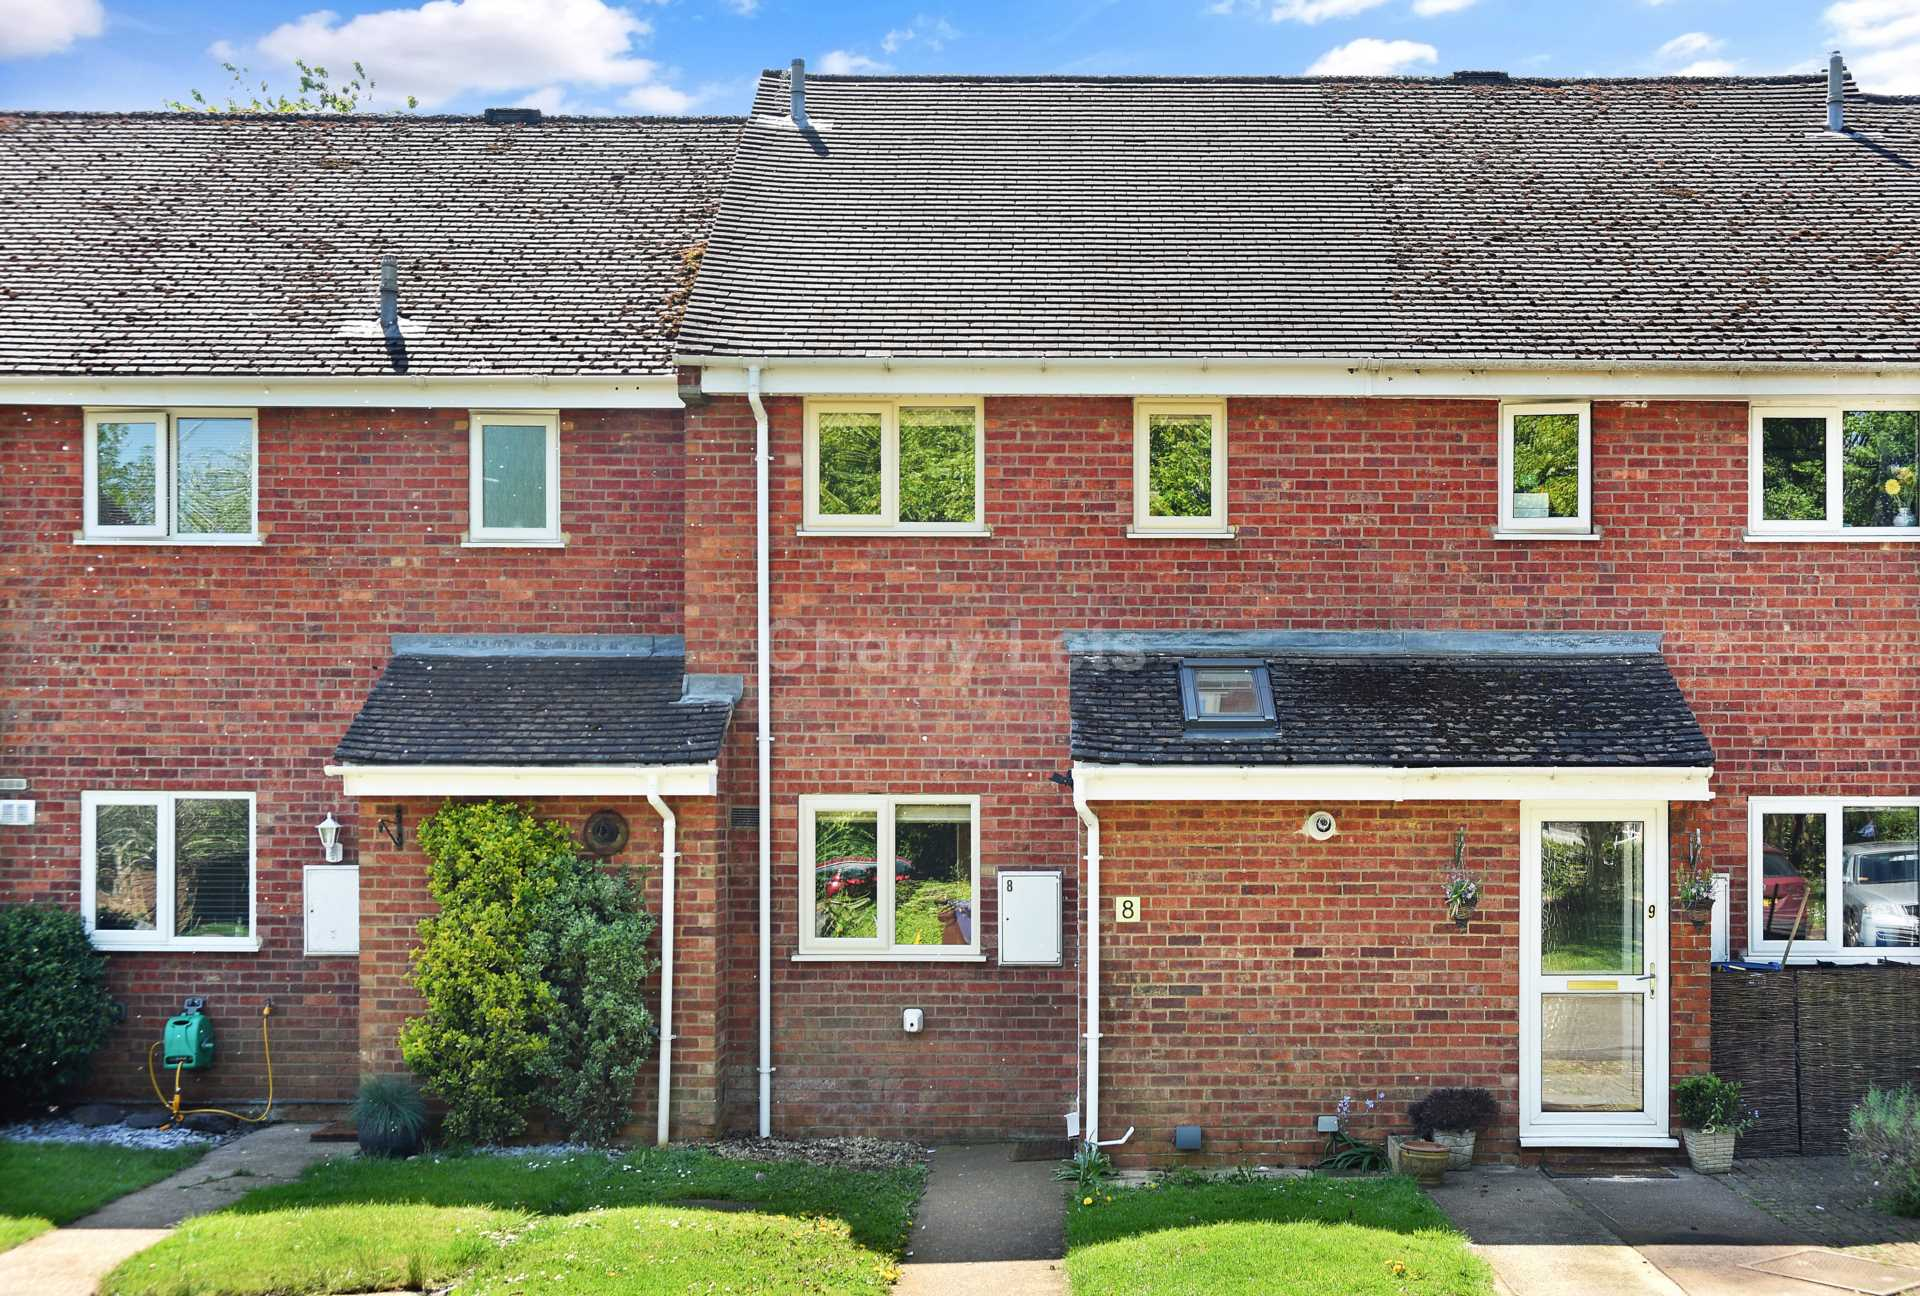 3 bed terraced house to rent in Keytes Close, Adderbury, OX17 13